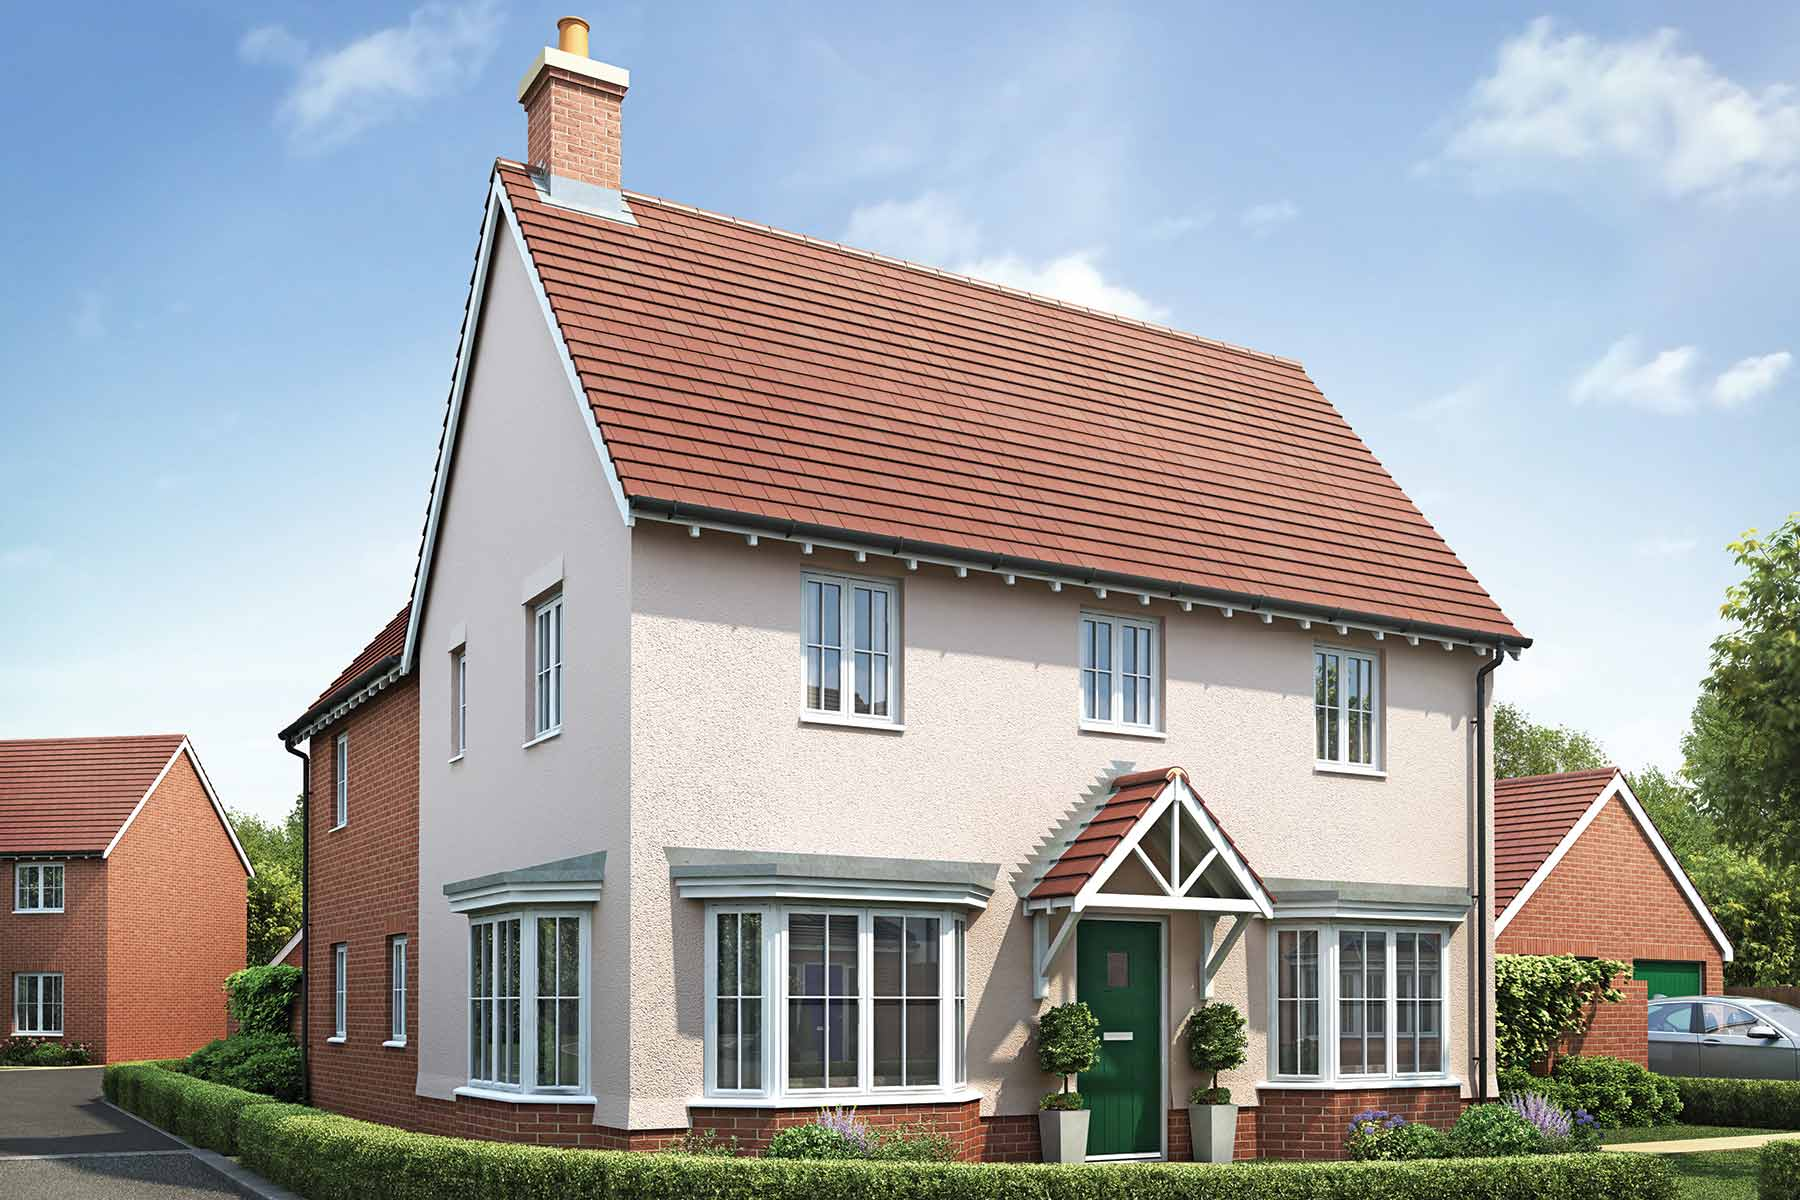 The Bartlett, Taylor Wimpey at Olstead Grange, Felsted, Essex